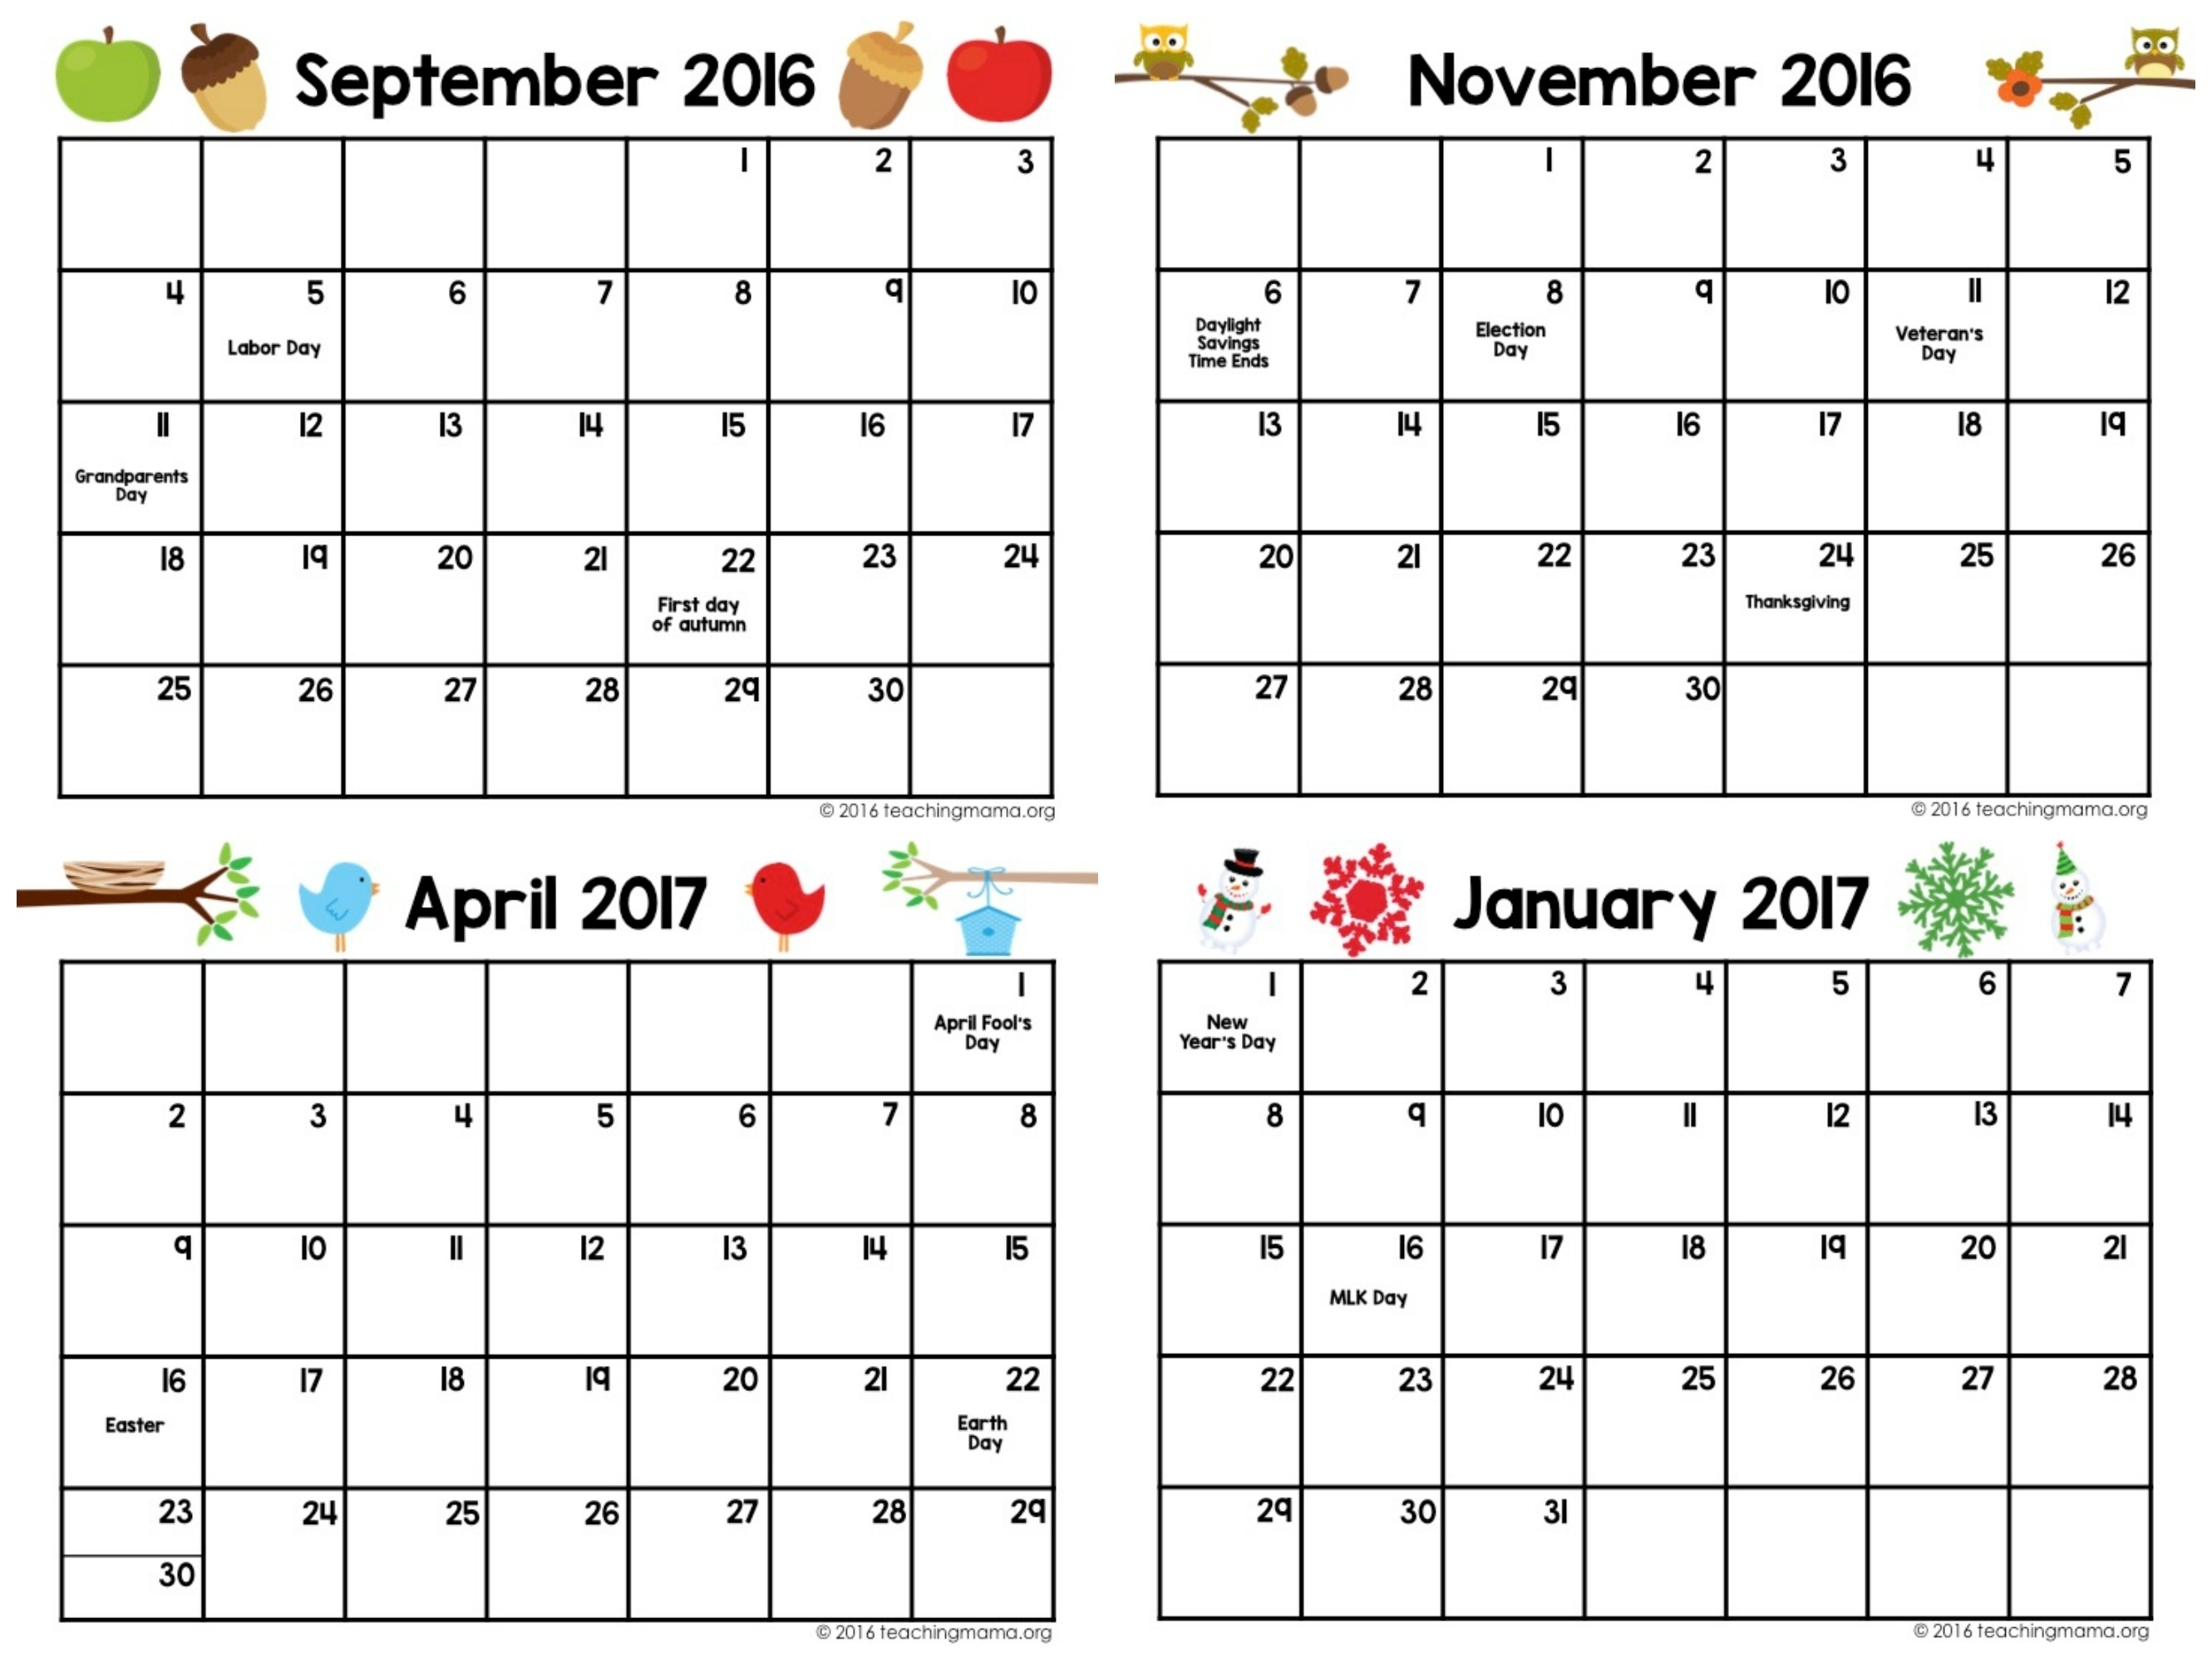 Monthly Planner Template For Children | Template Calendar Printable intended for Monthly Planner Template For Children